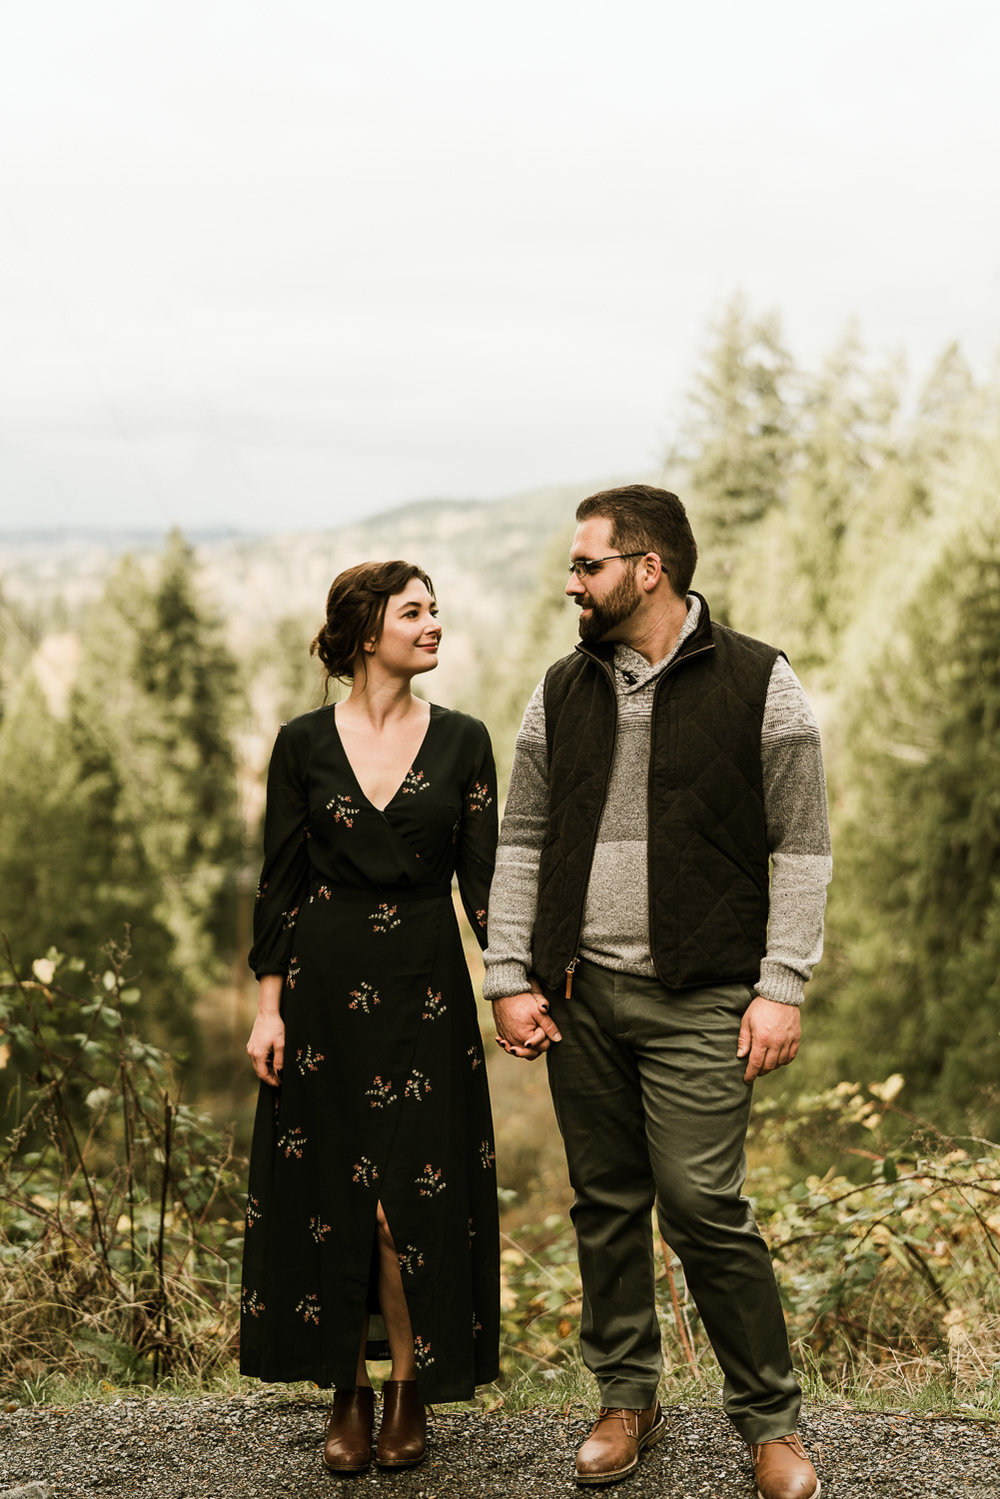 A Picturesque PNW Engagement Session | Snoqualmie Falls | Seattle Wedding photographer-22.jpg